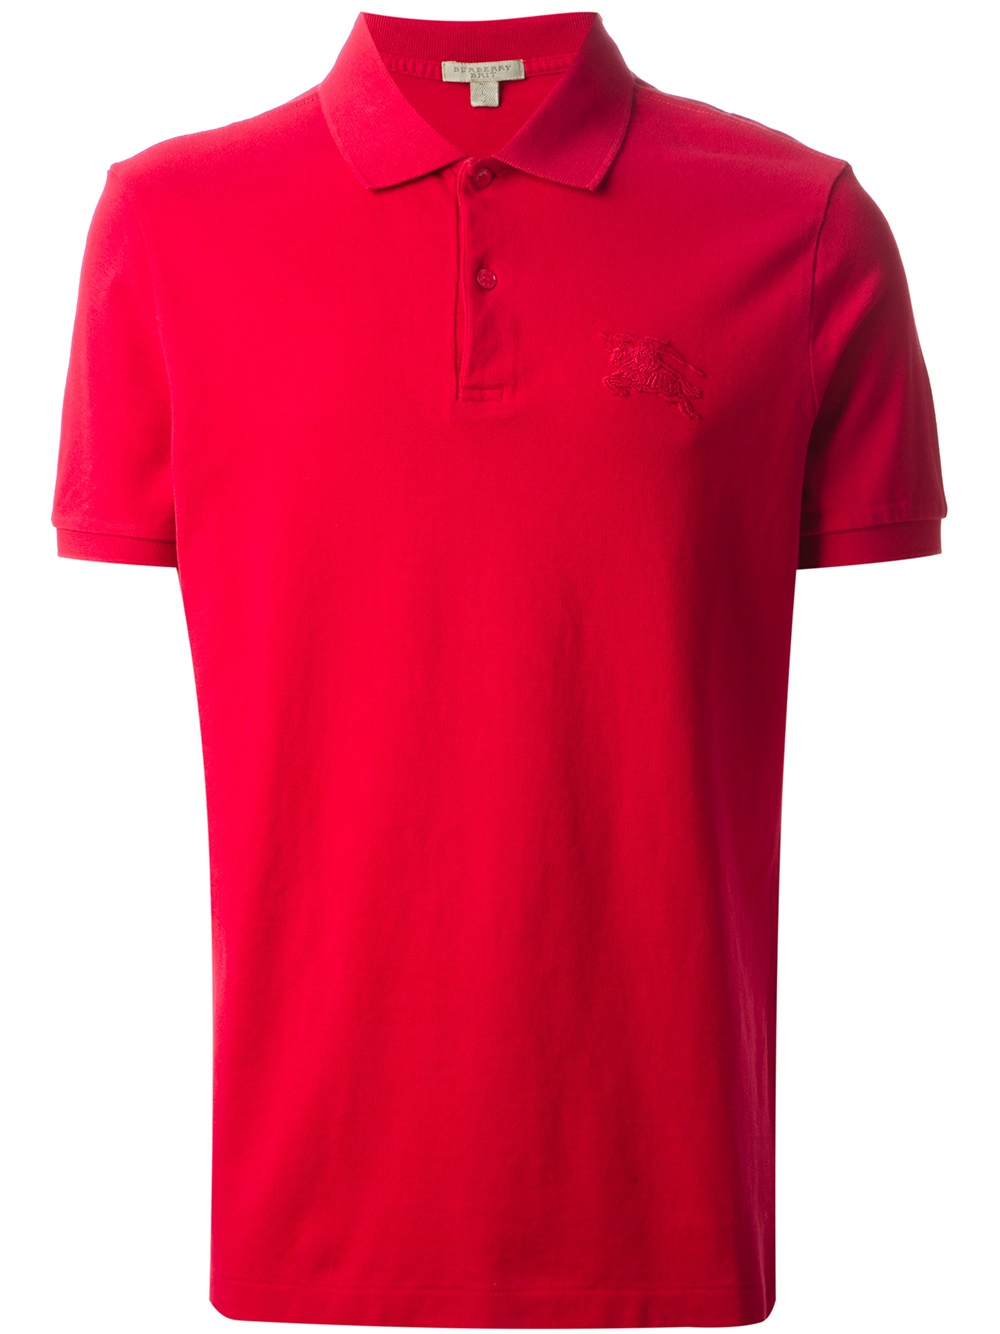 Burberry Brit Short Sleeve Polo Shirt In Red For Men Lyst